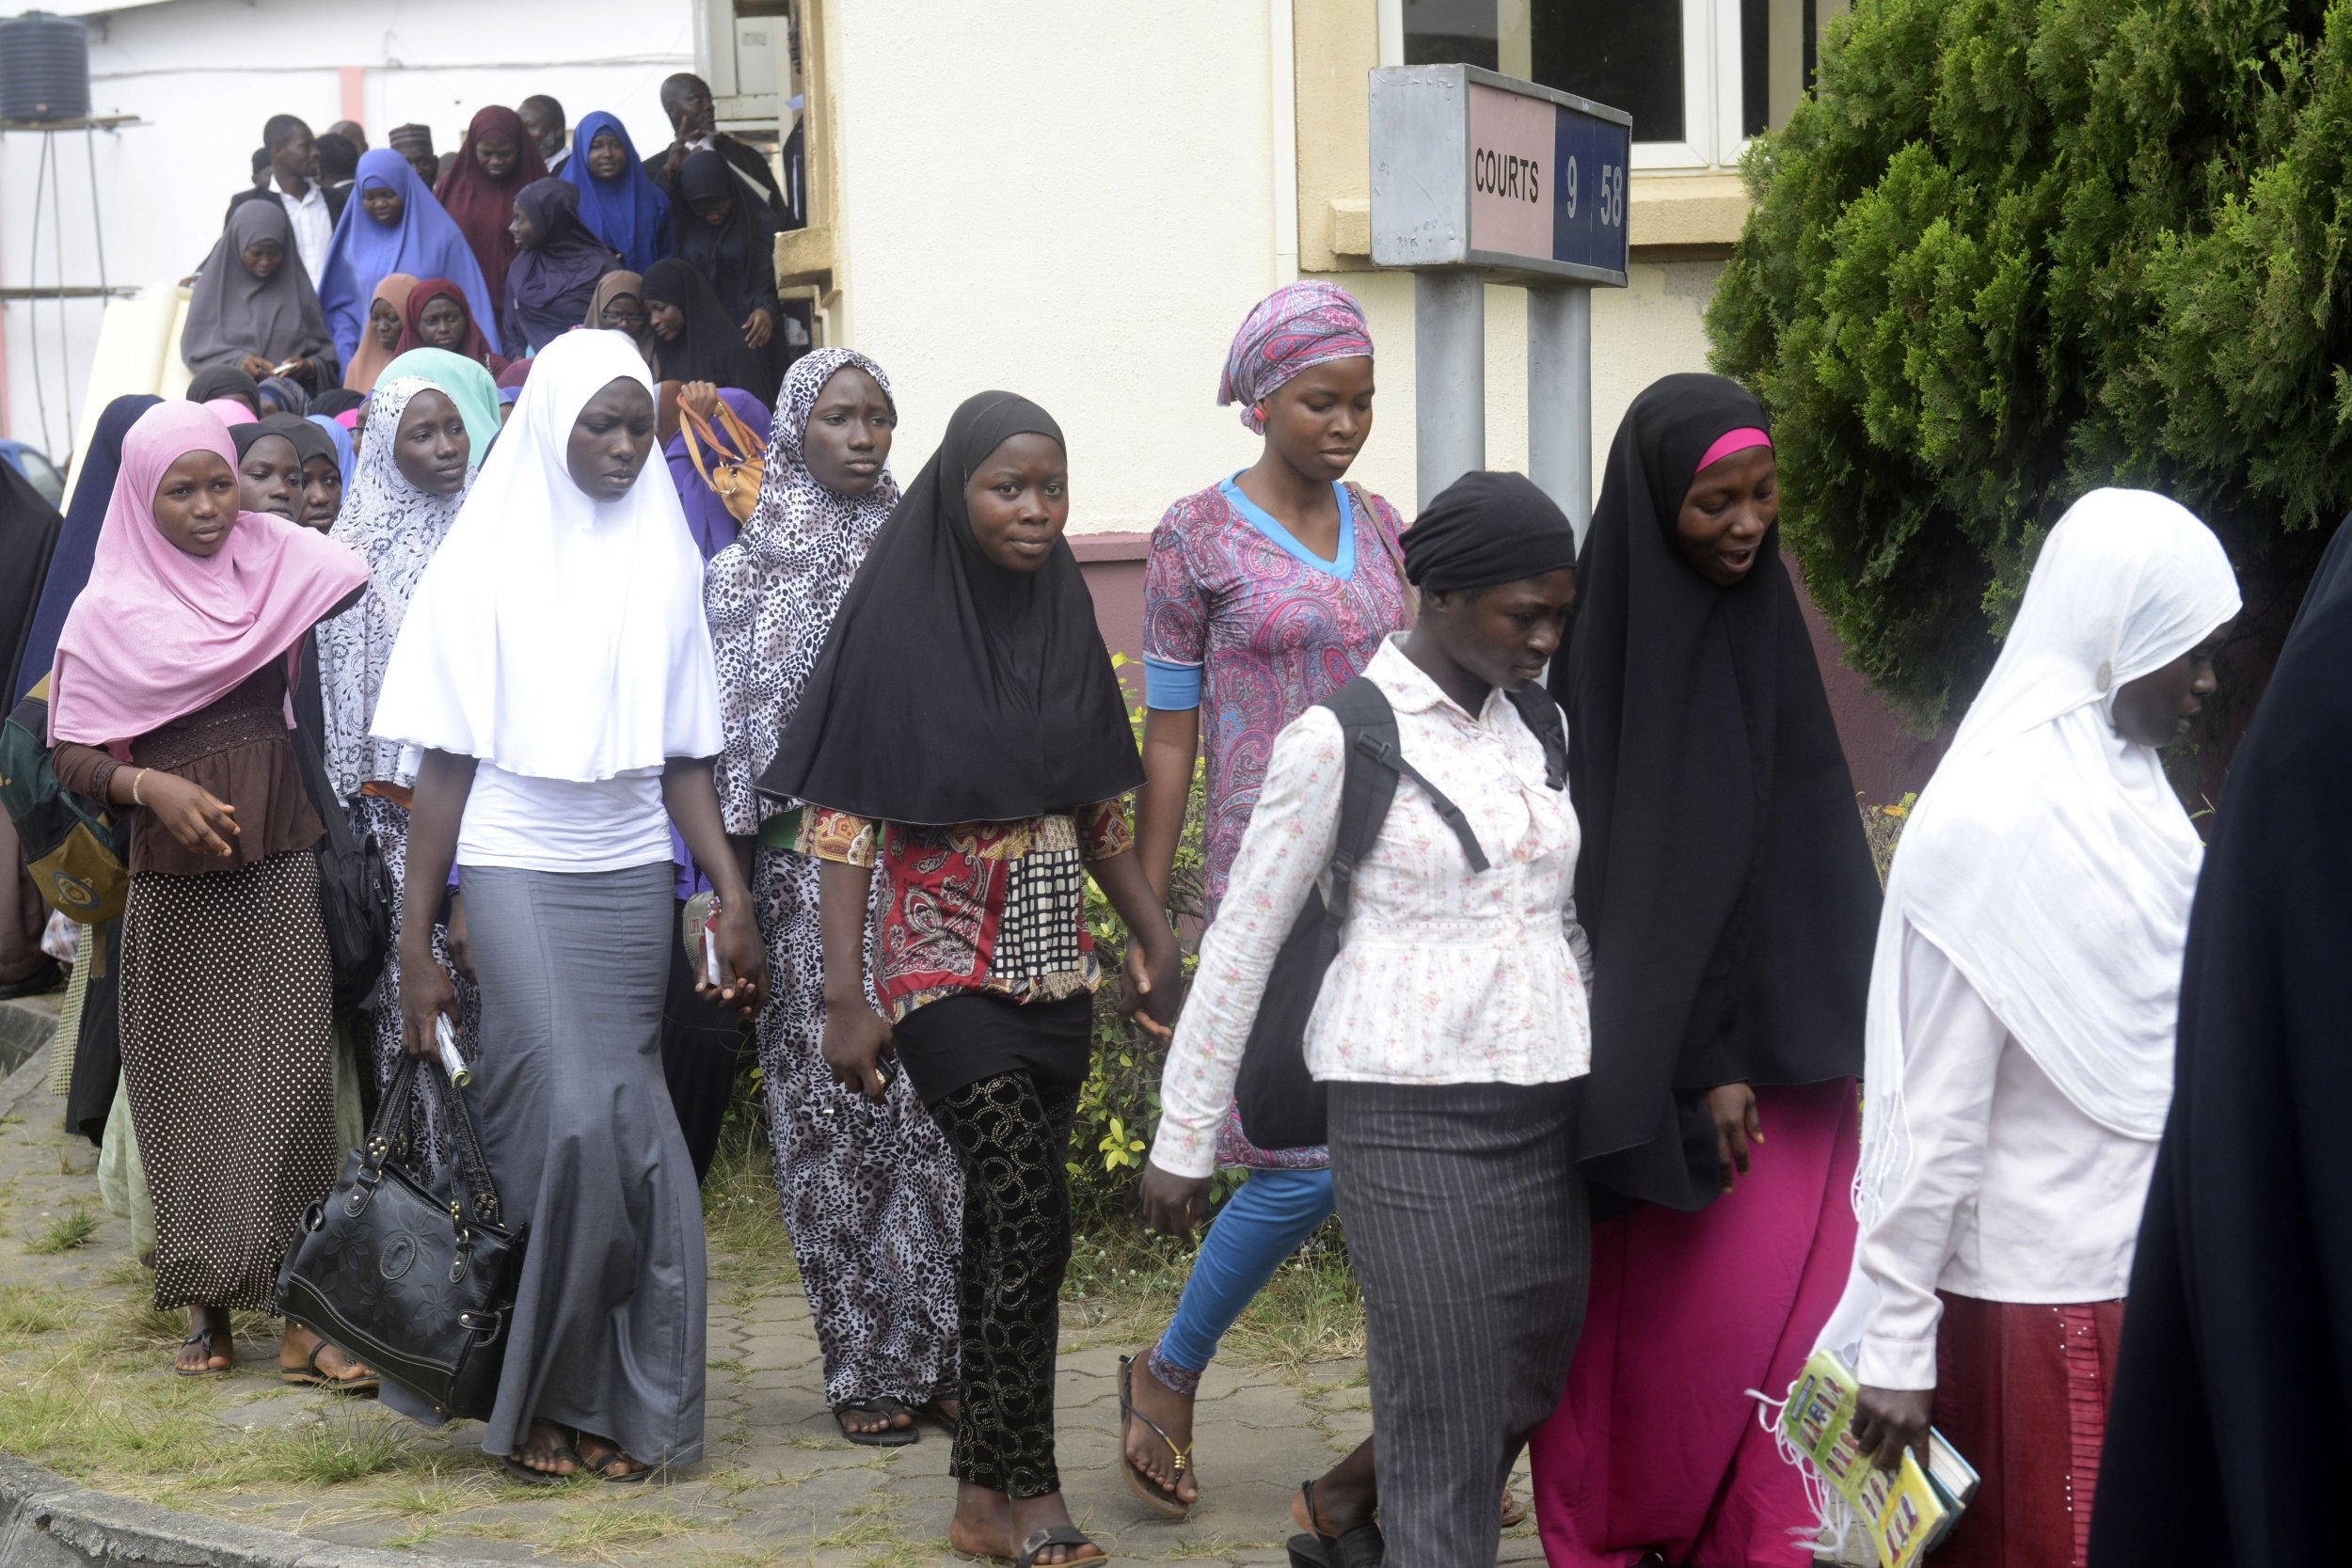 Muslim students in Nigeria.